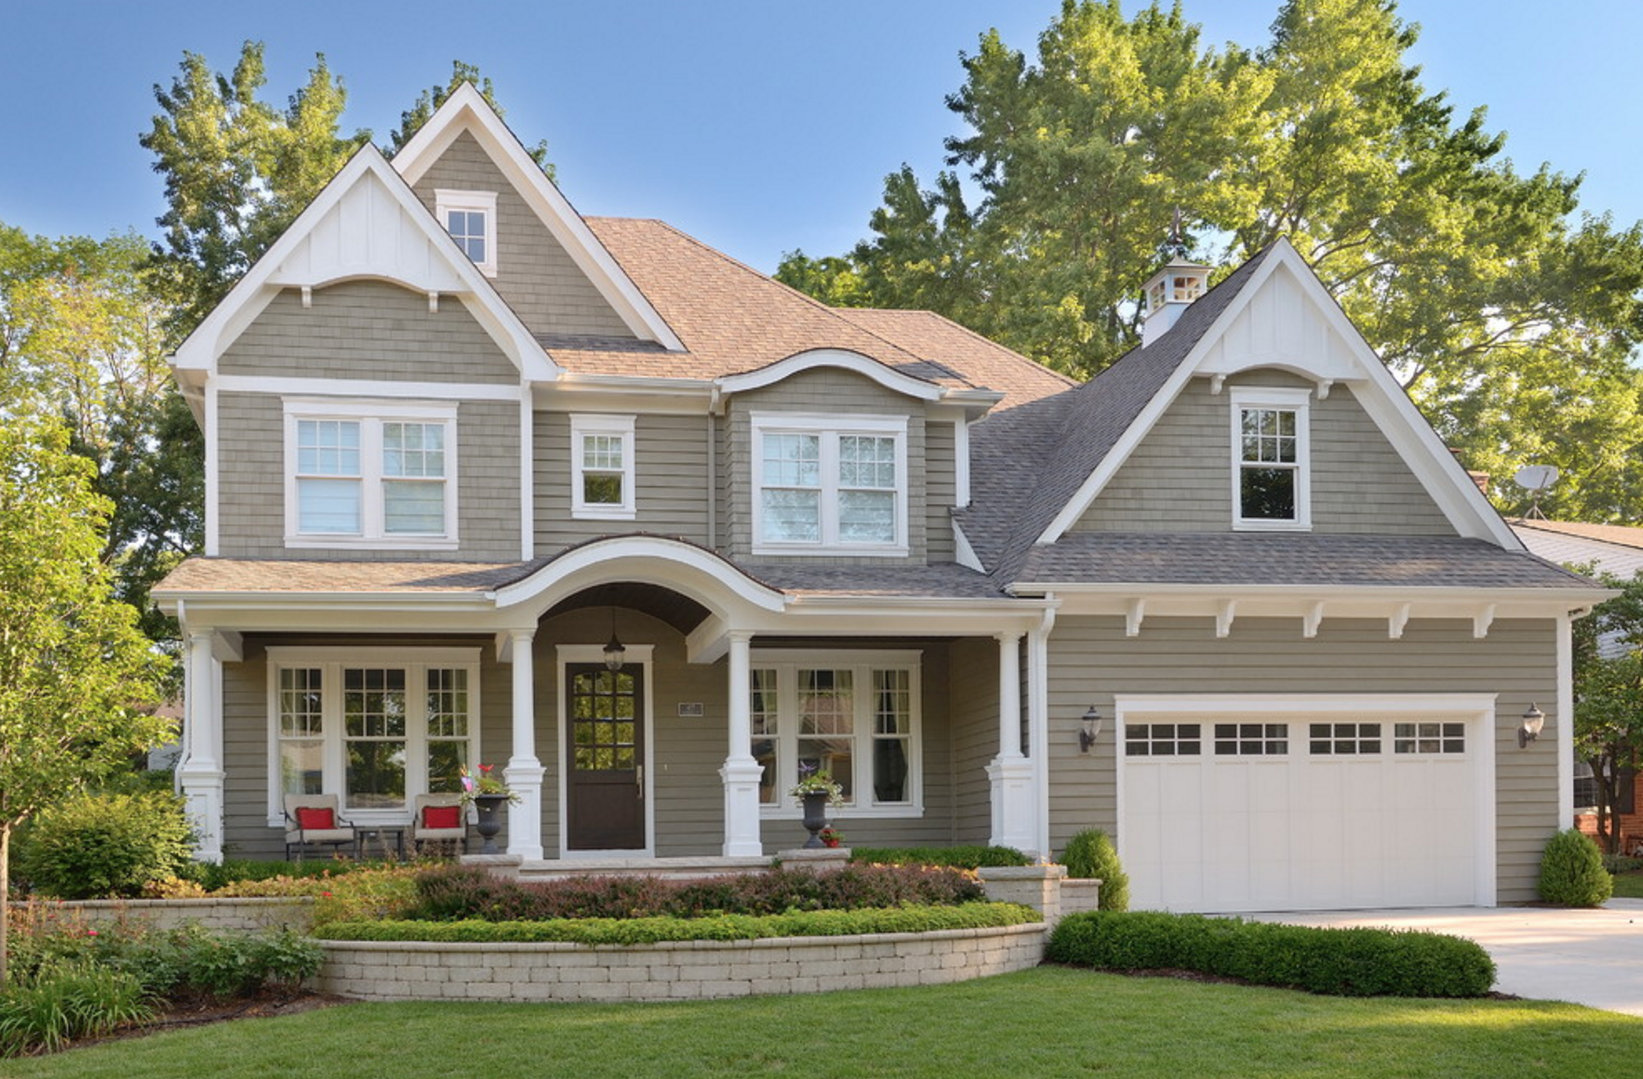 Remodelaholic exterior paint colors that add curb appeal for Exterior painting